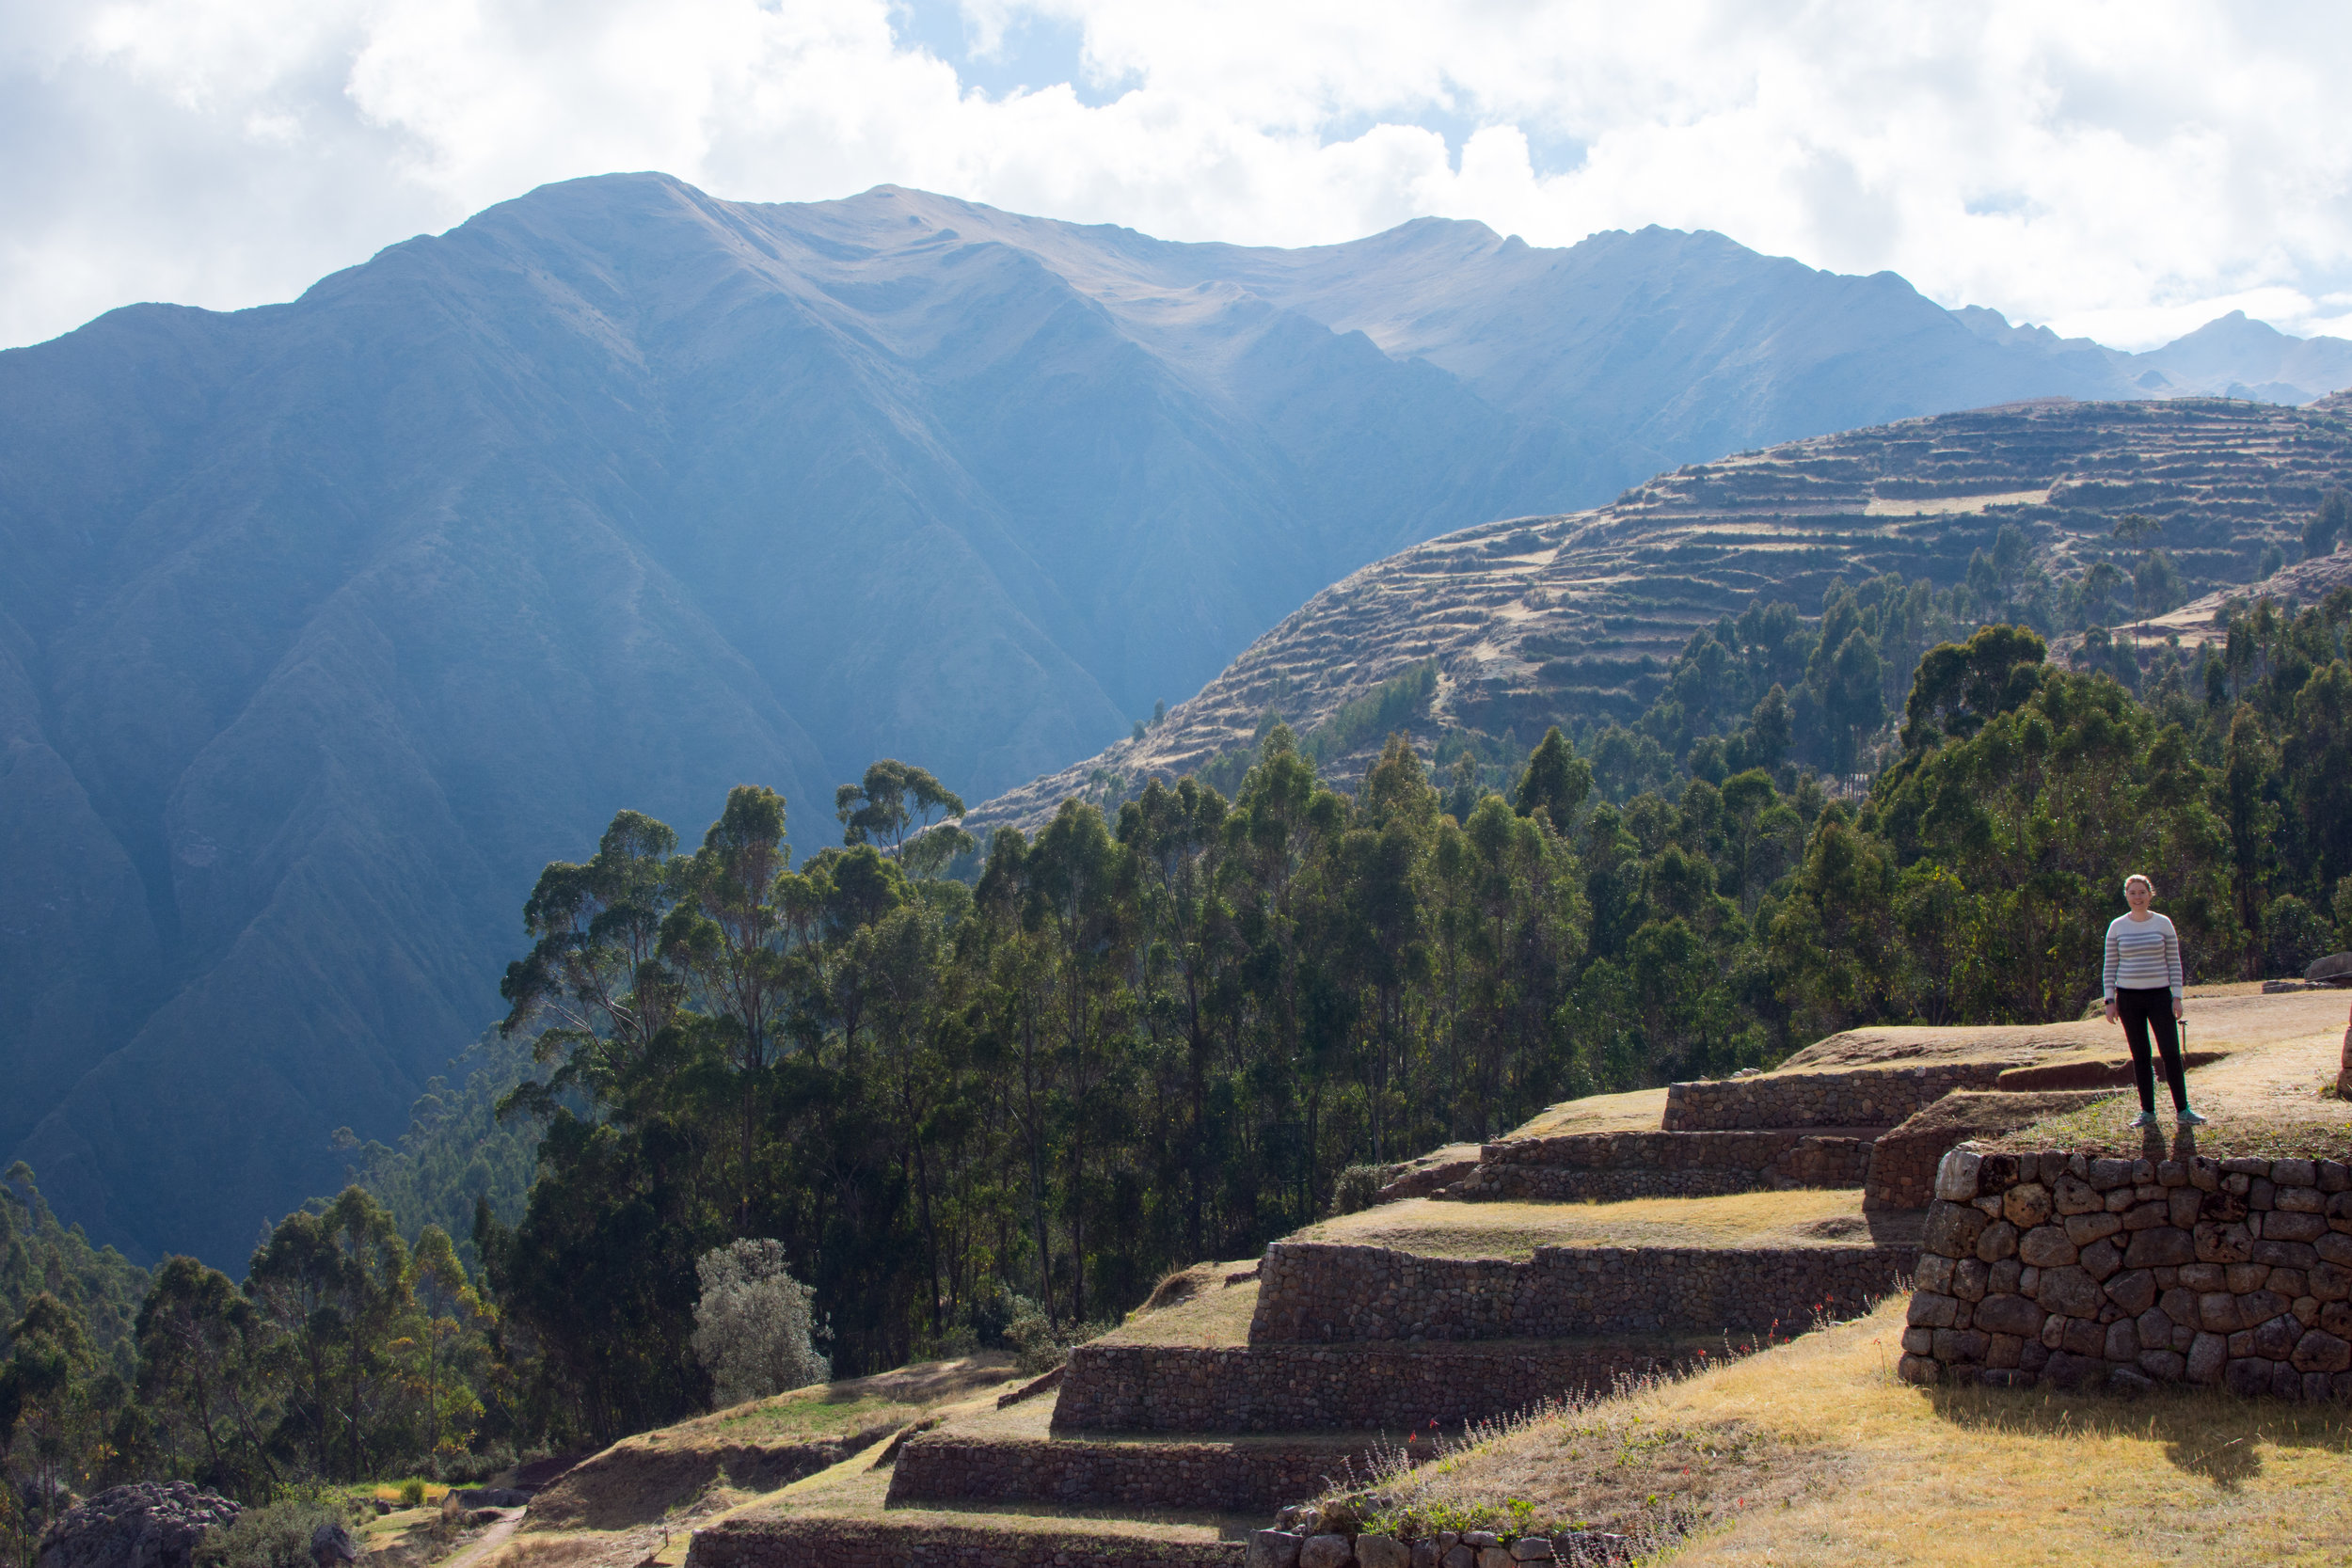 Agricultural Terraces at Chinchero